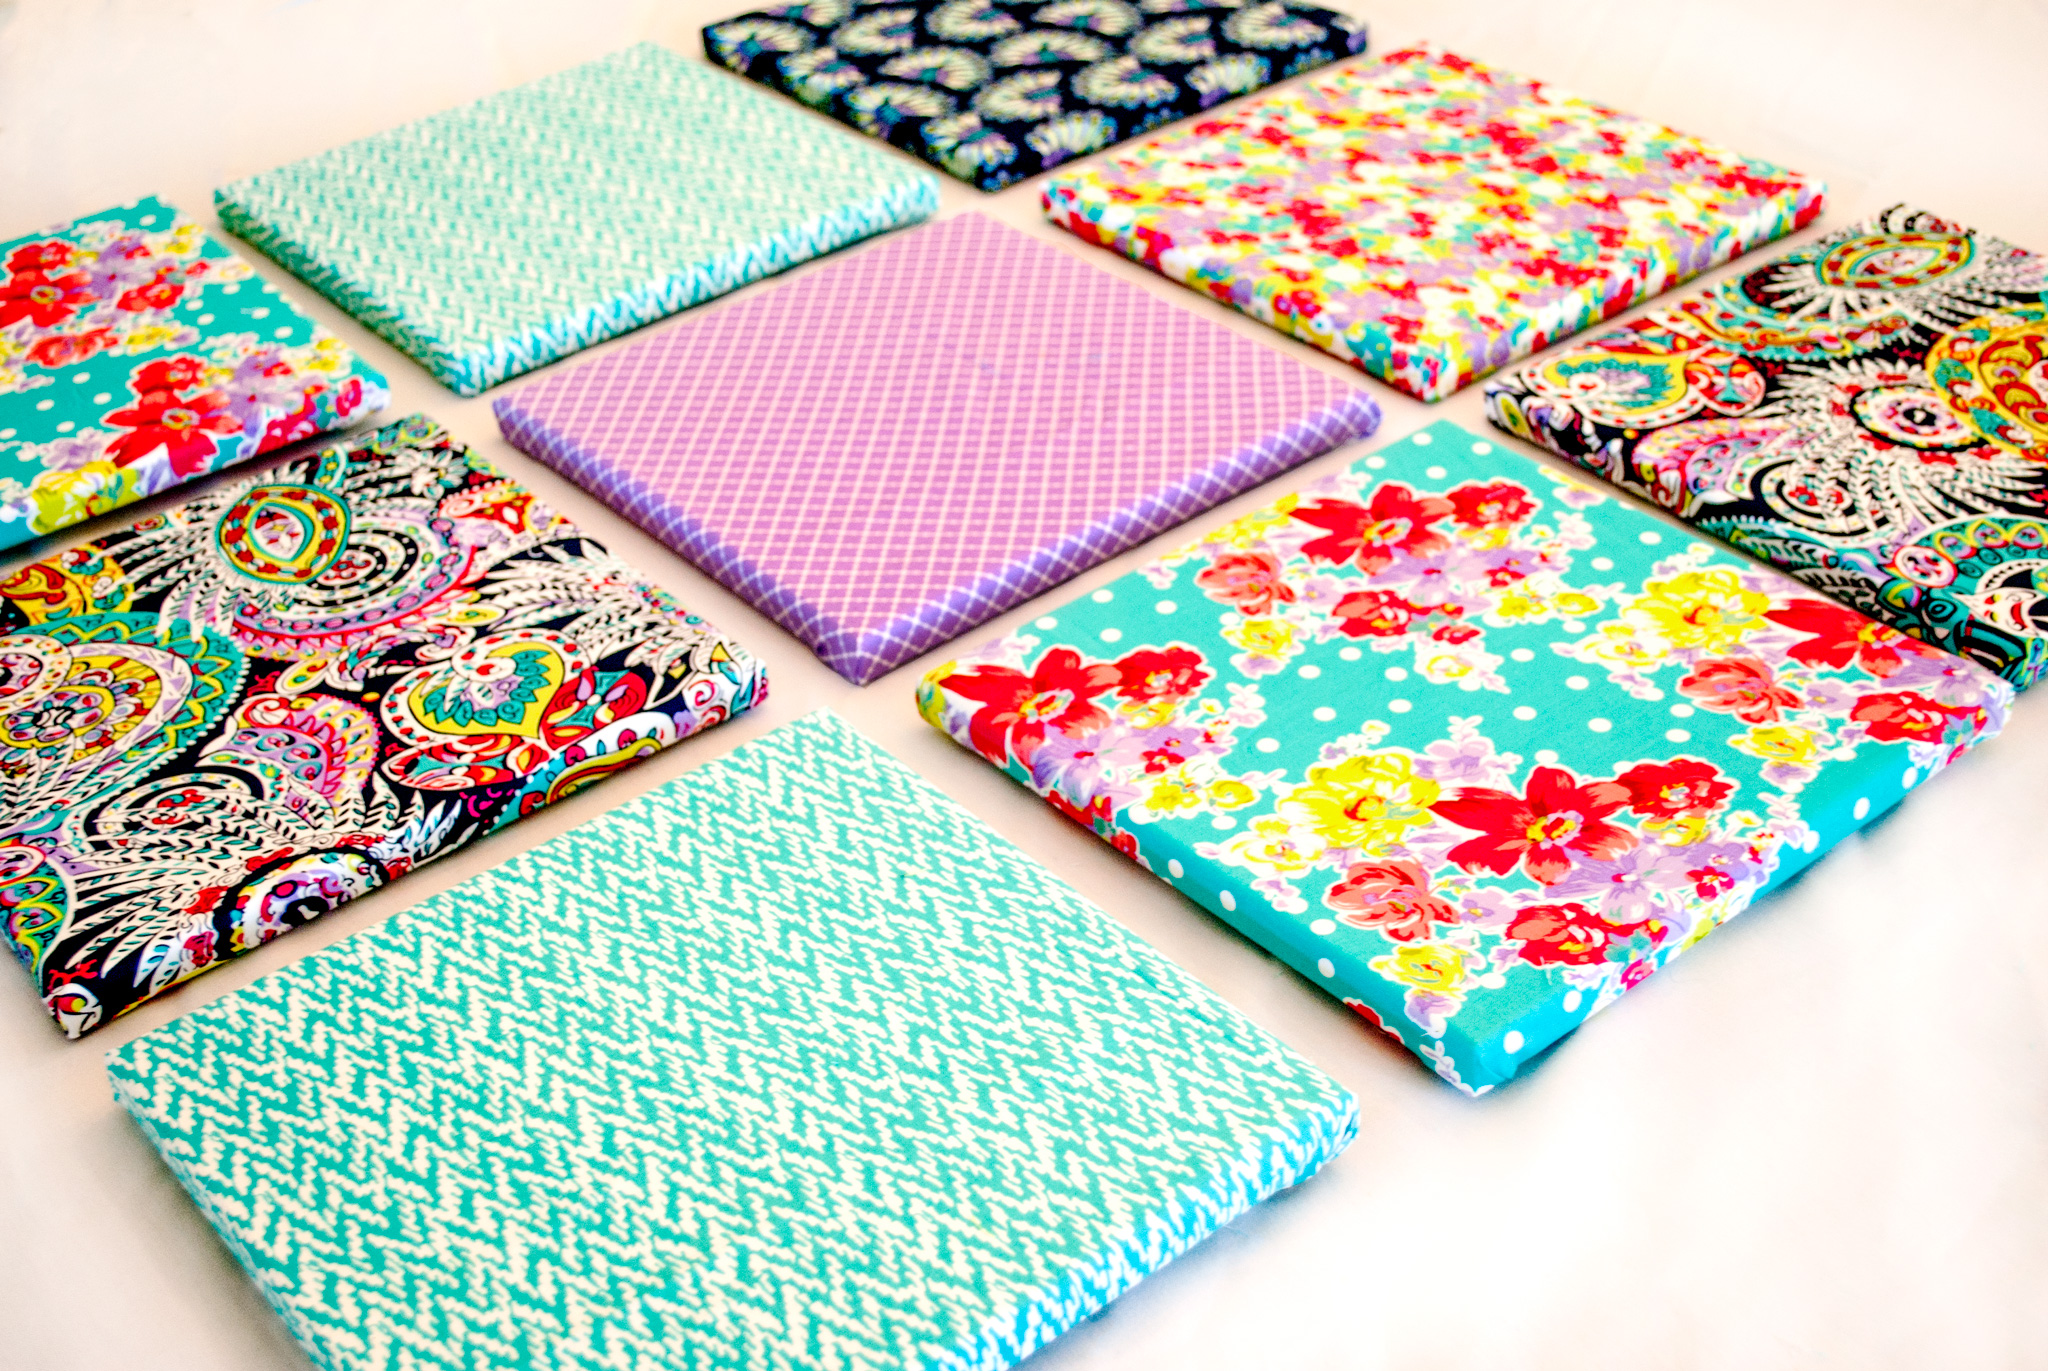 10 projects for upcycling fabric scraps idea digezt solutioingenieria Images